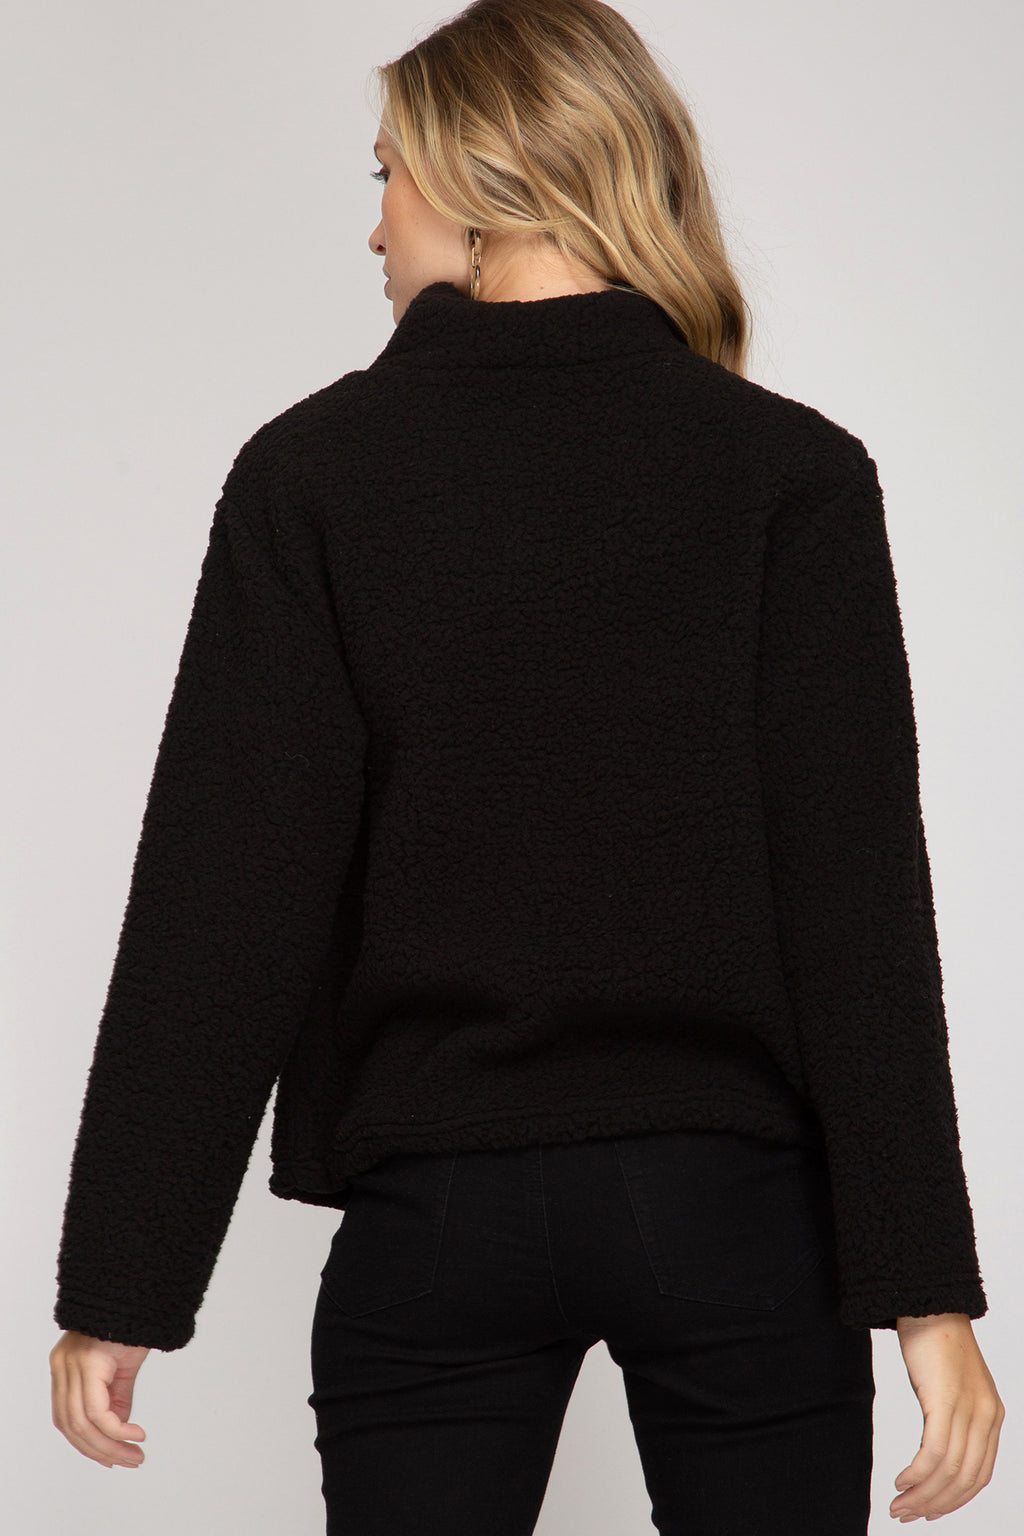 Black Fuzzy Pullover Top